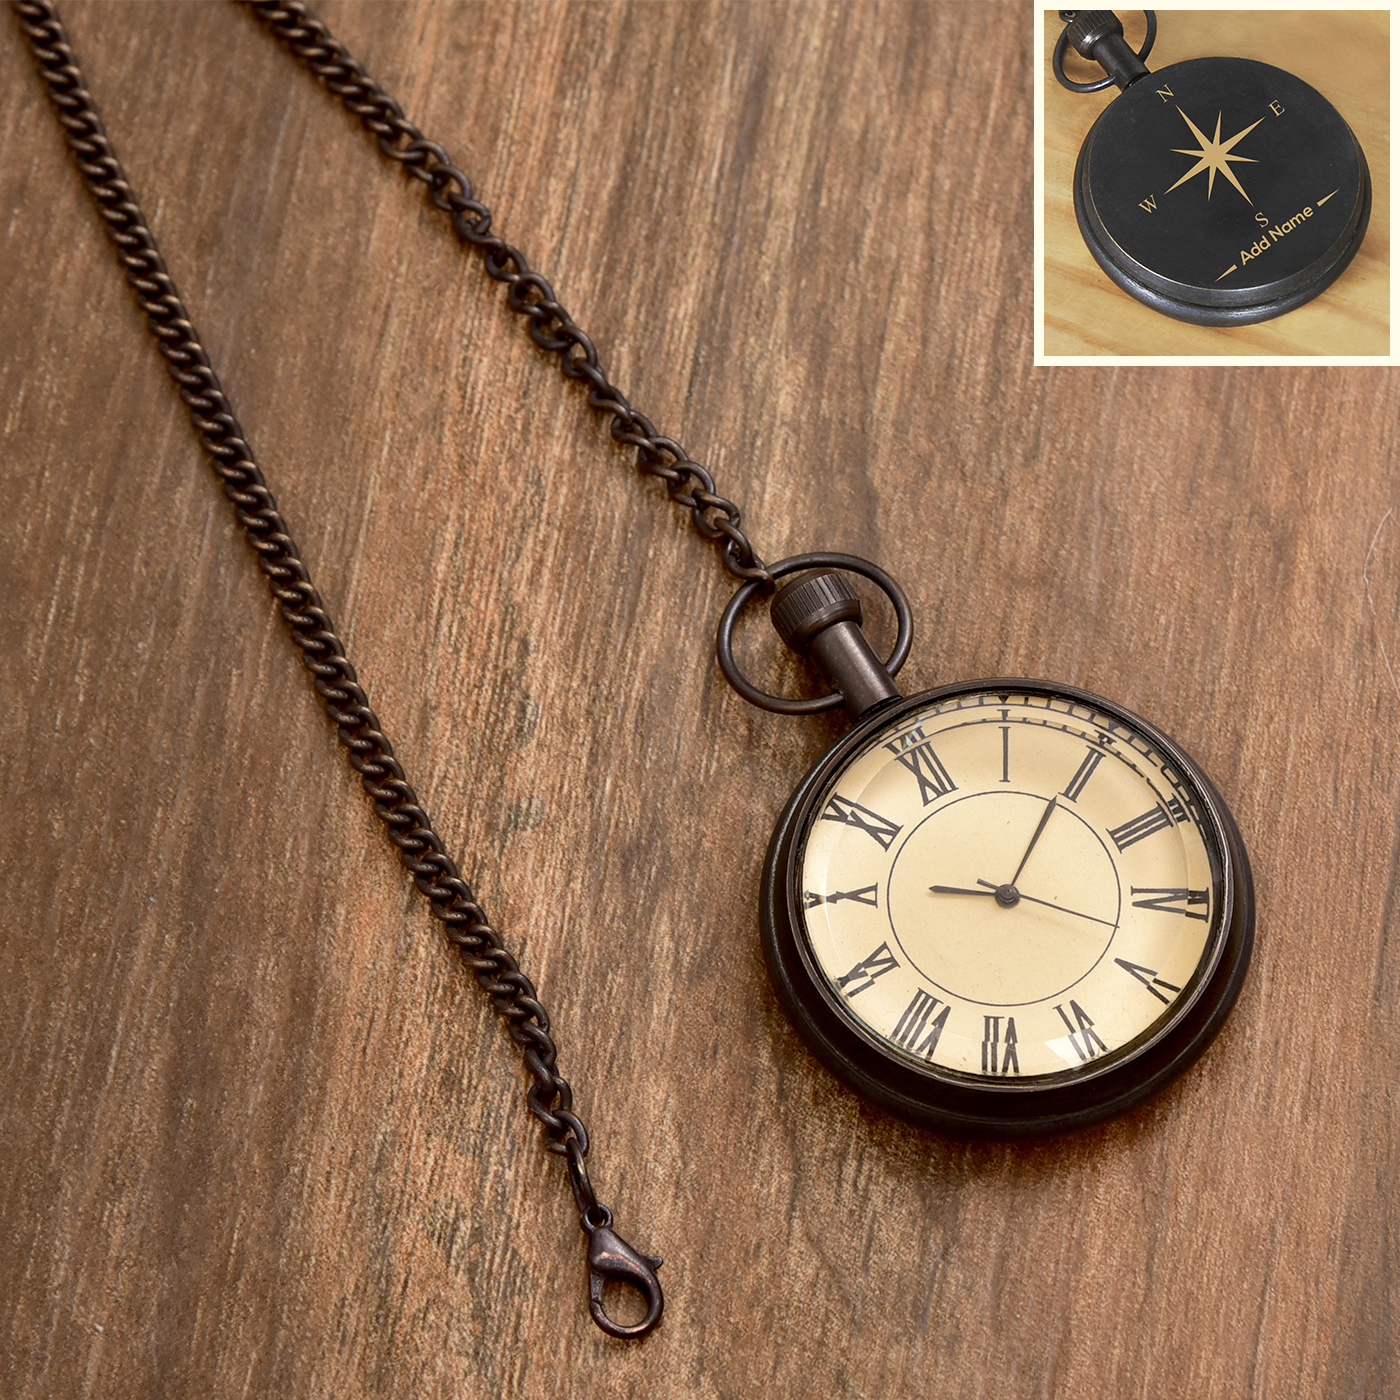 Personalized-Vintage-Pocket-Watch